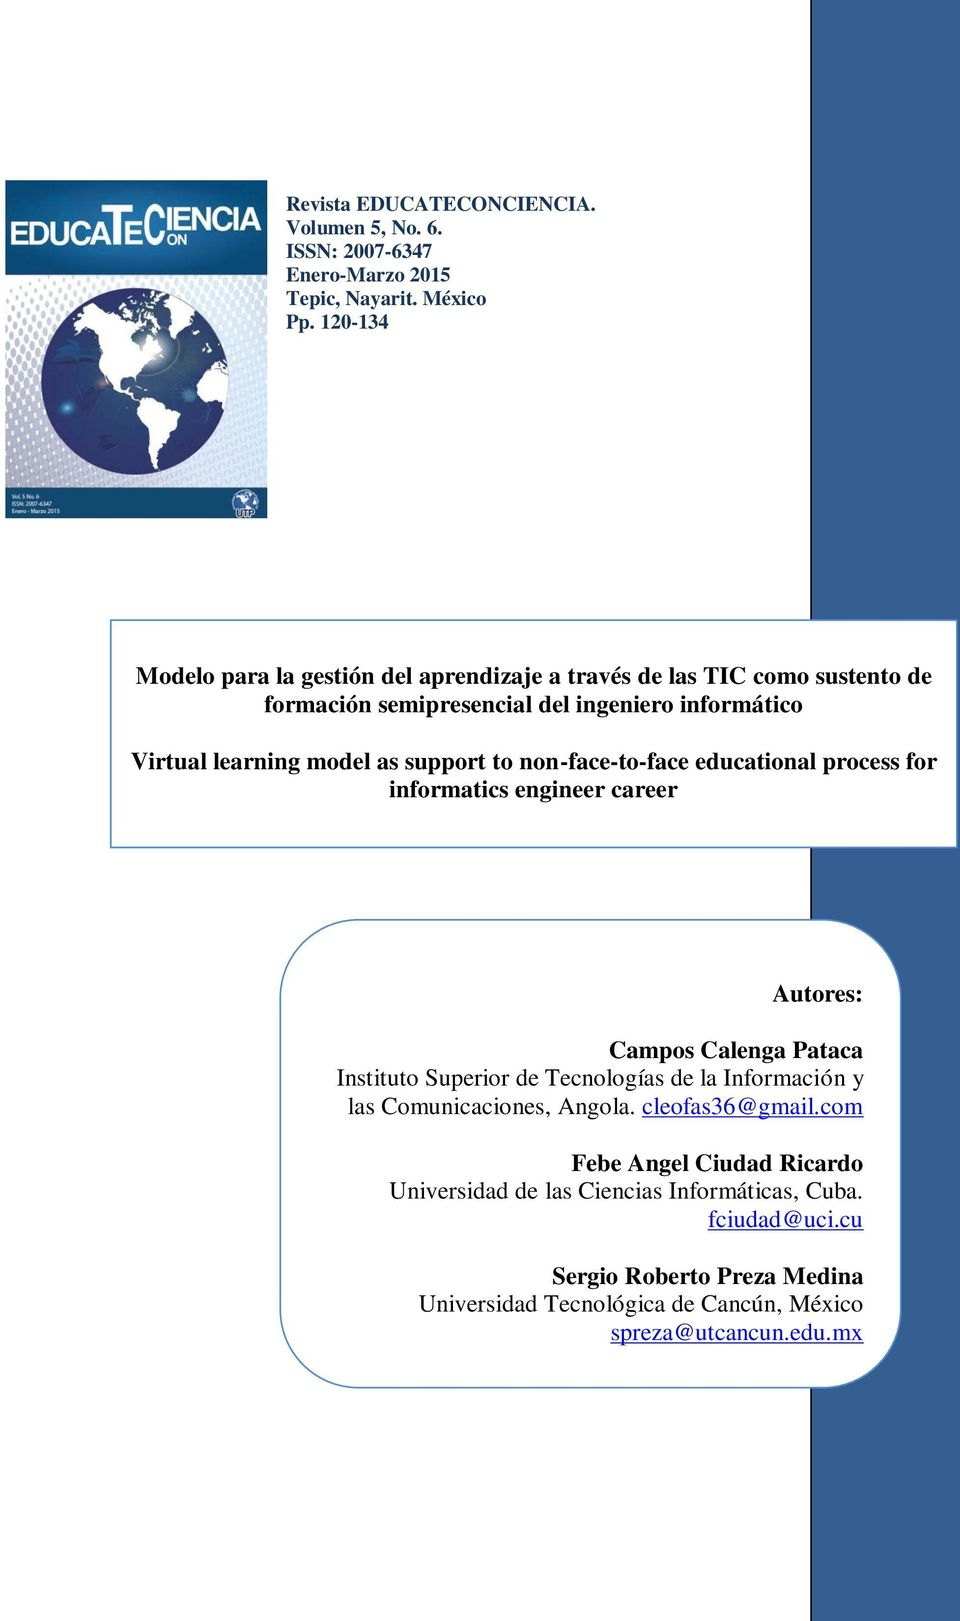 support to non-face-to-face educational process for informatics engineer career Autores: Campos Calenga Pataca Instituto Superior de Tecnologías de la Información y